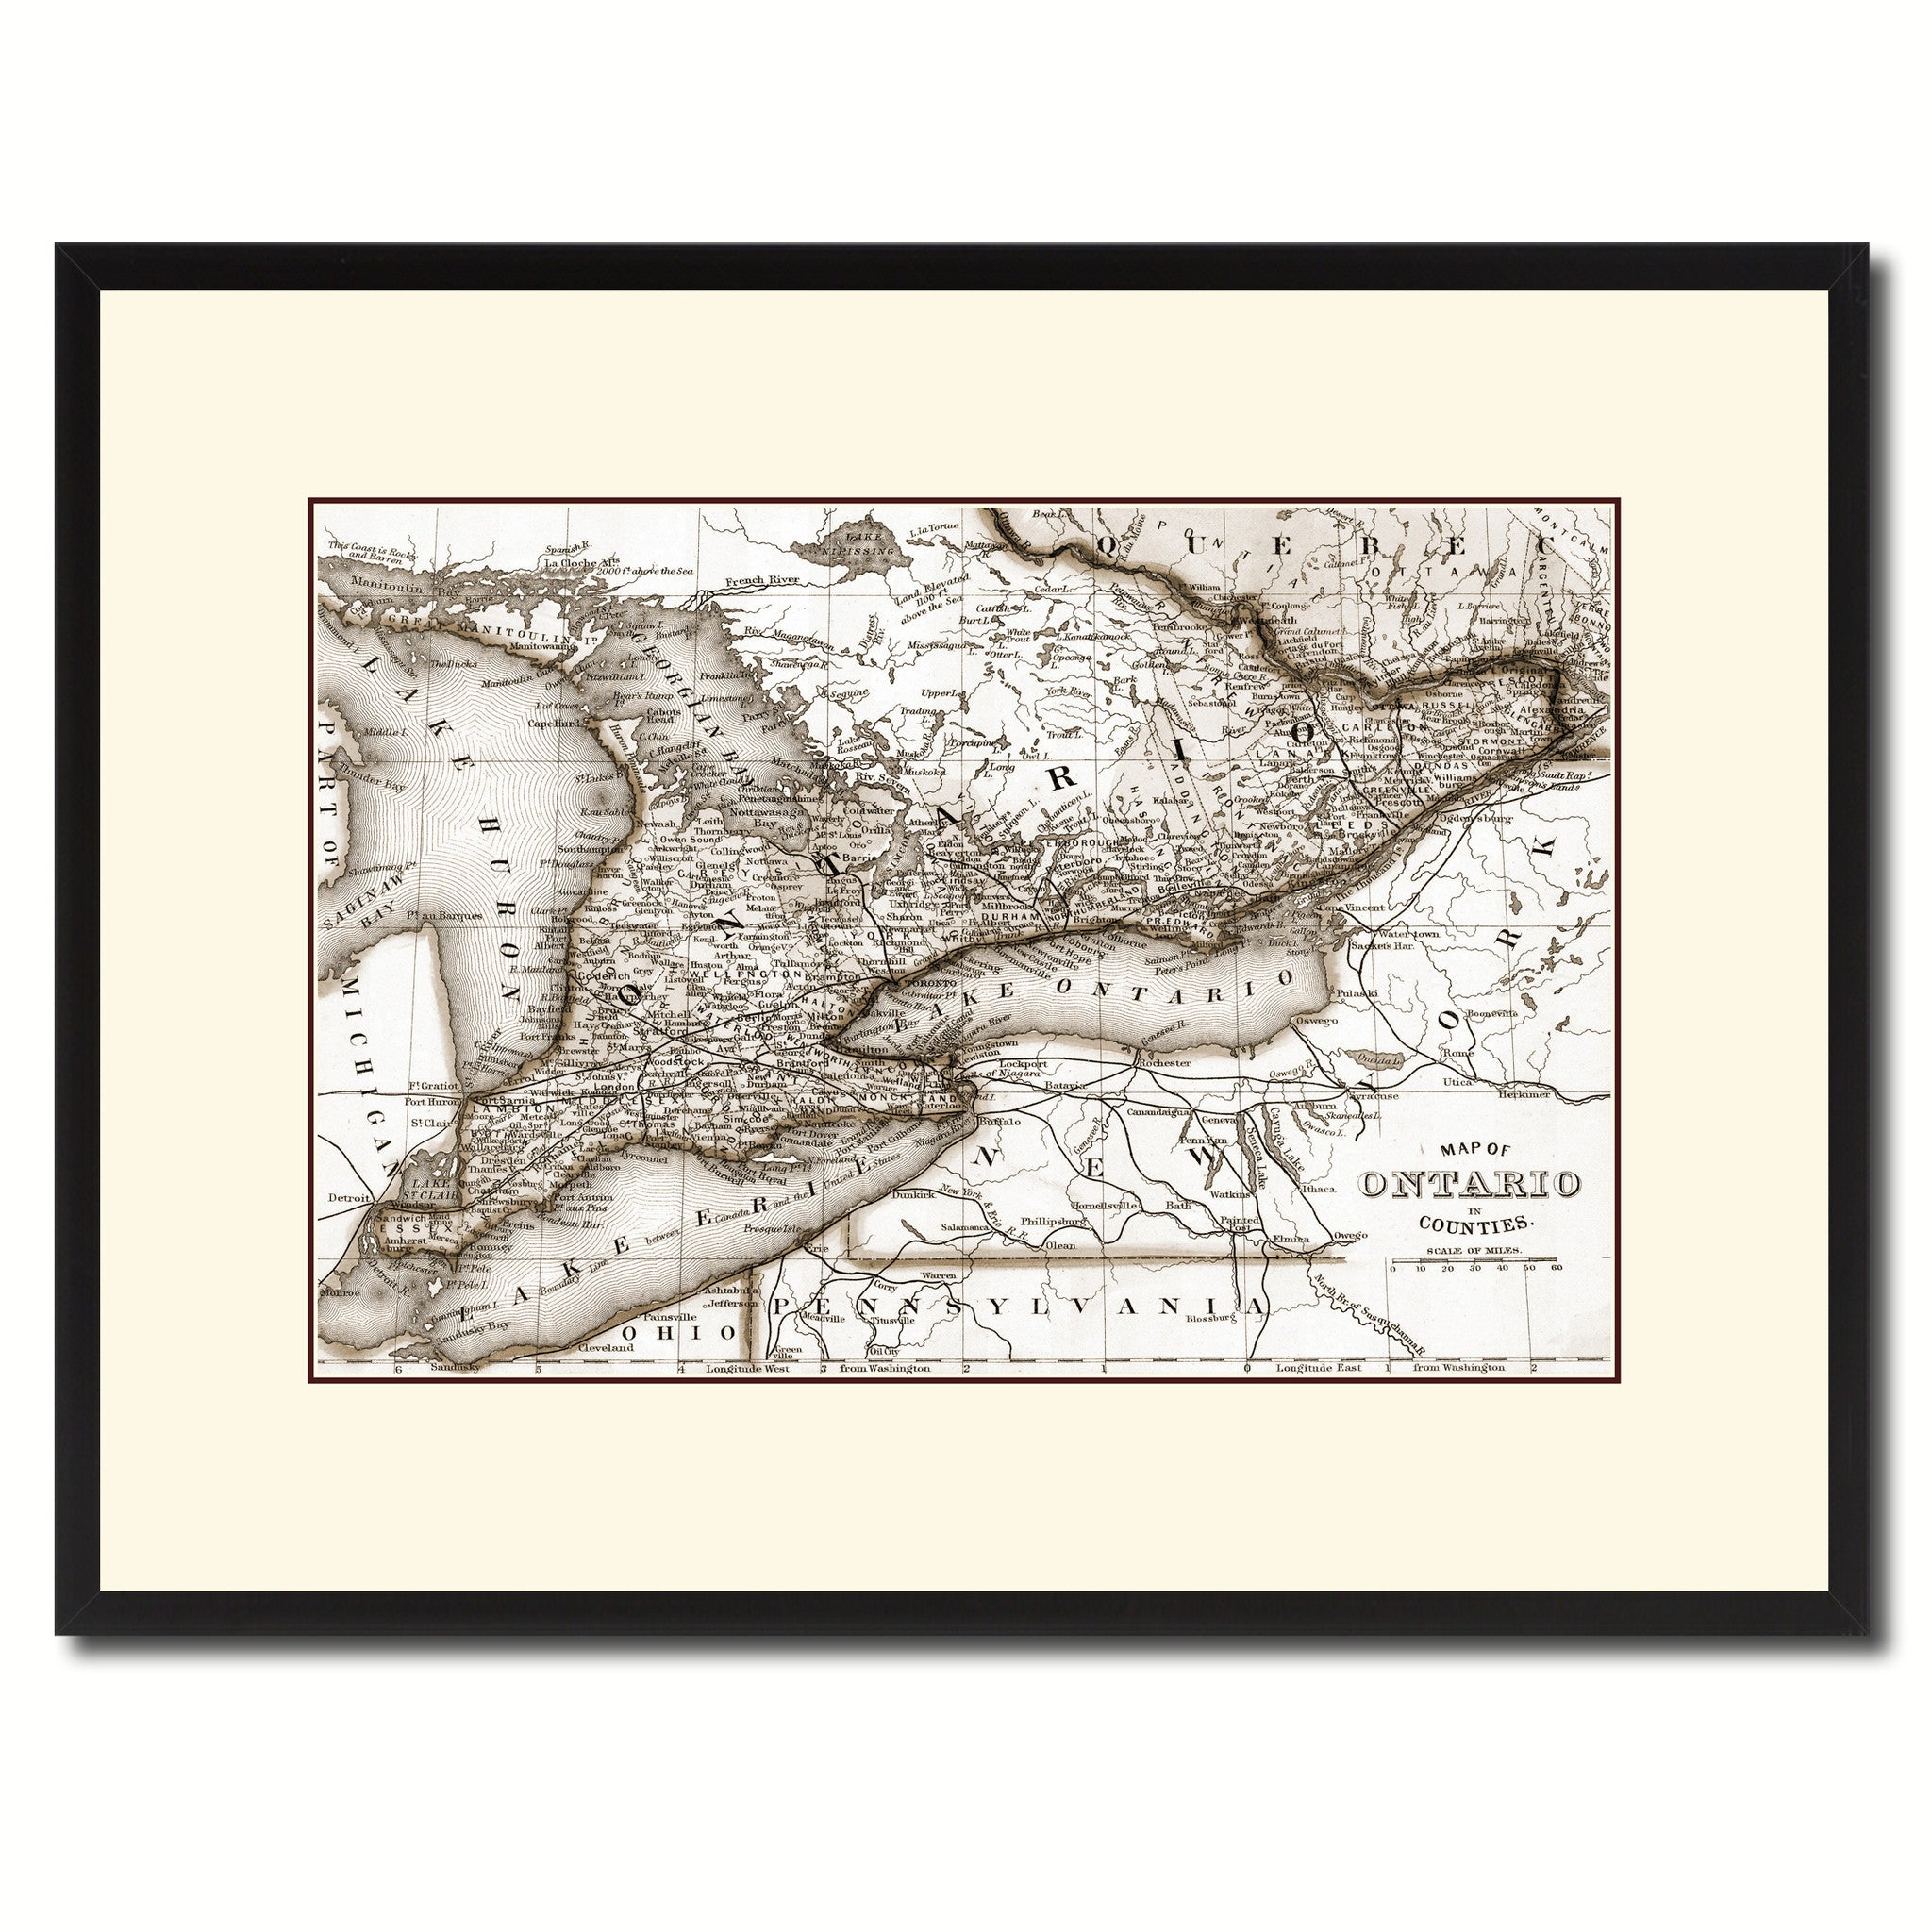 Ontario Canada Vintage Sepia Map Canvas Print Picture